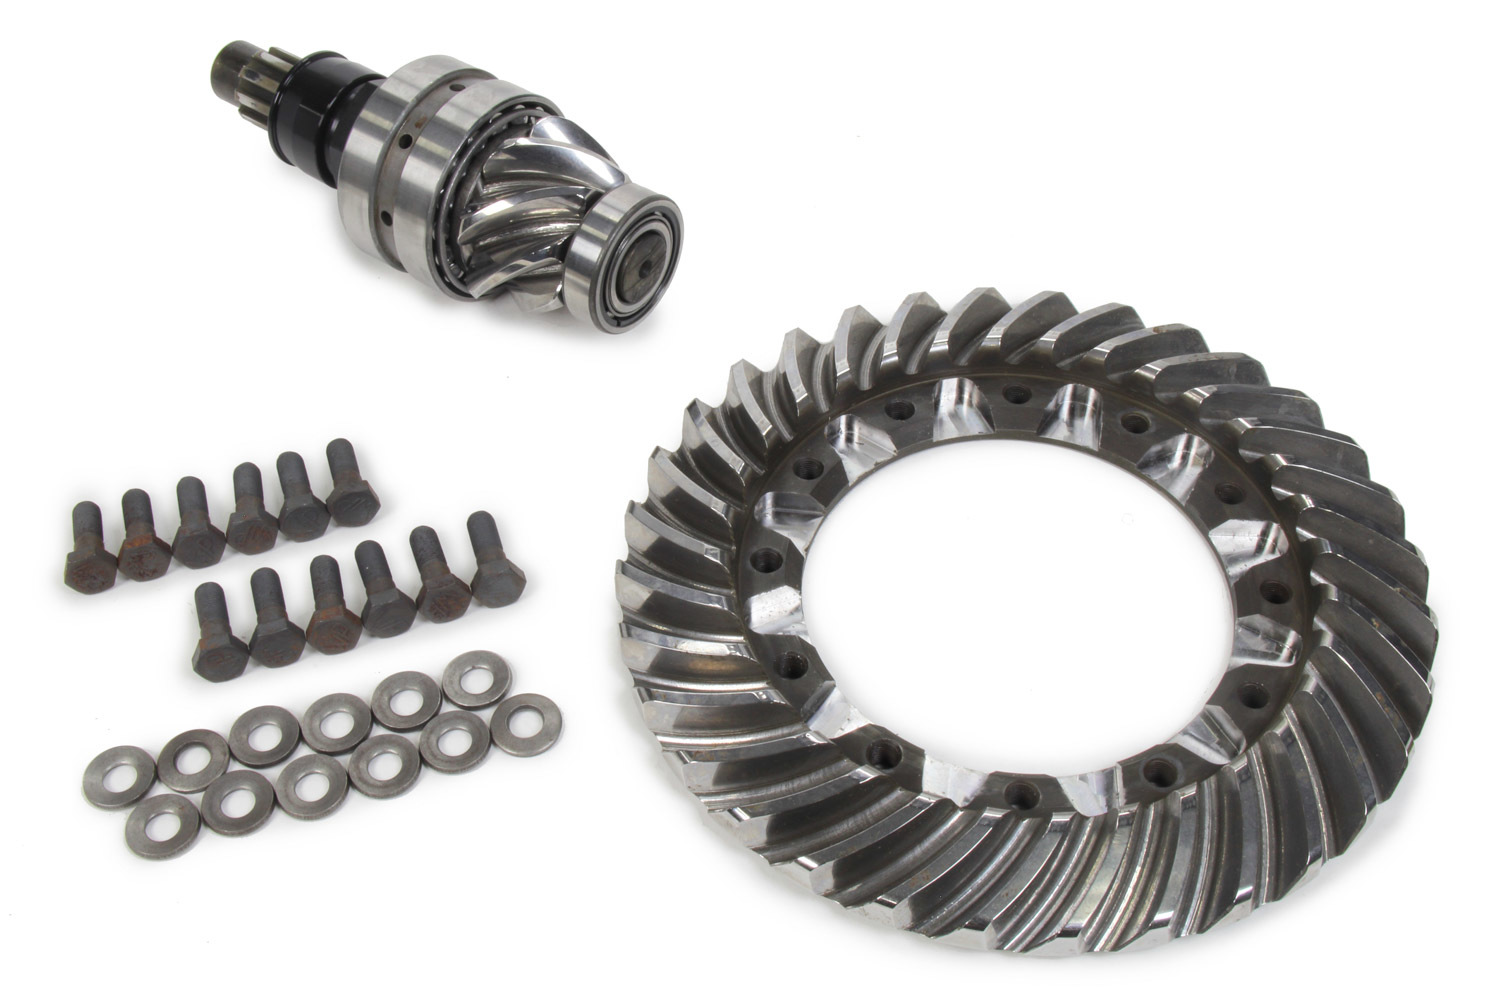 Winters 52457-EDM/REM Ring and Pinion, 4.57 Ratio, 10 Spline, EDM, REM, Bearings Included, Steel, Winters 12-Bolt 10 in Quick Change, Kit